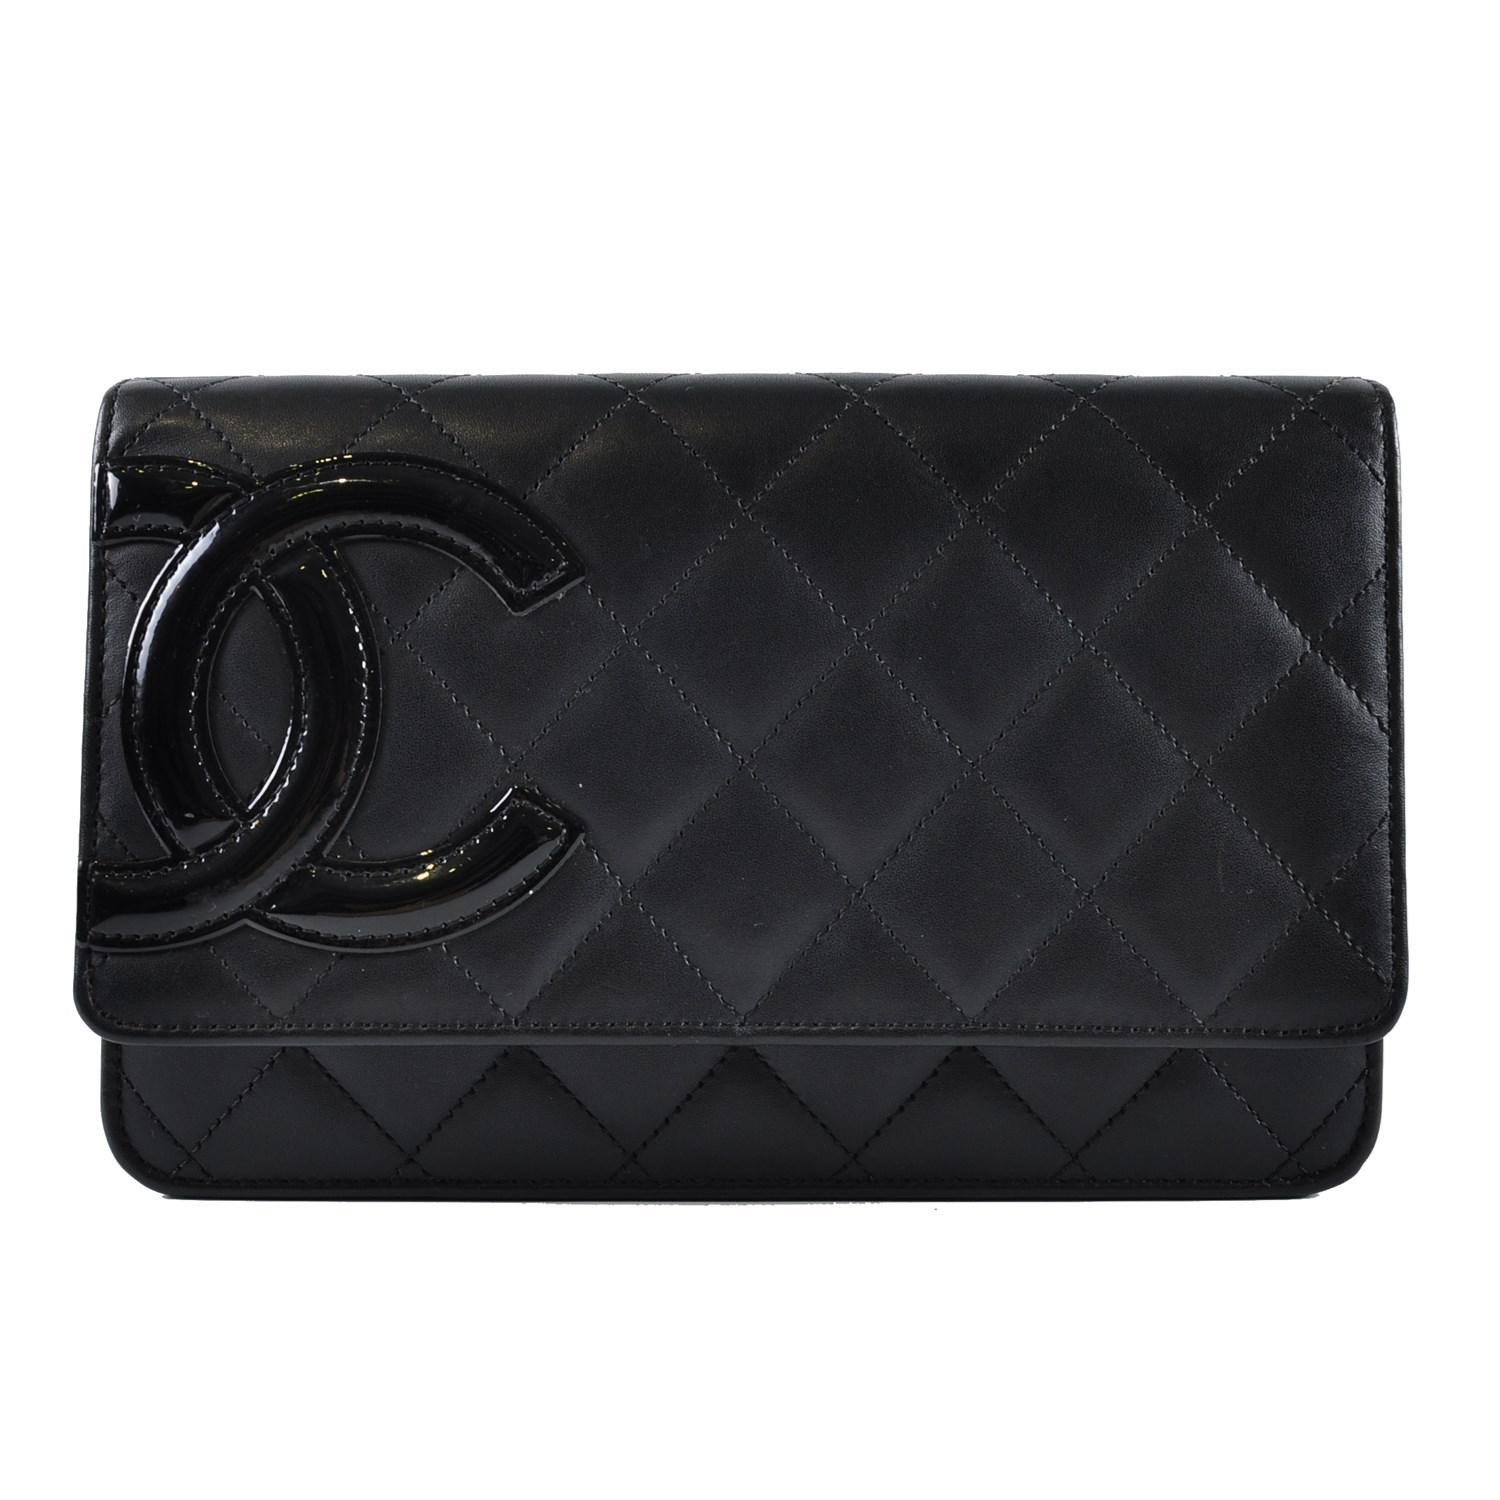 22ad9e34dfc3 Chanel Cambon Woc Black Lambskin With Cc Patent Logo And Pink ...